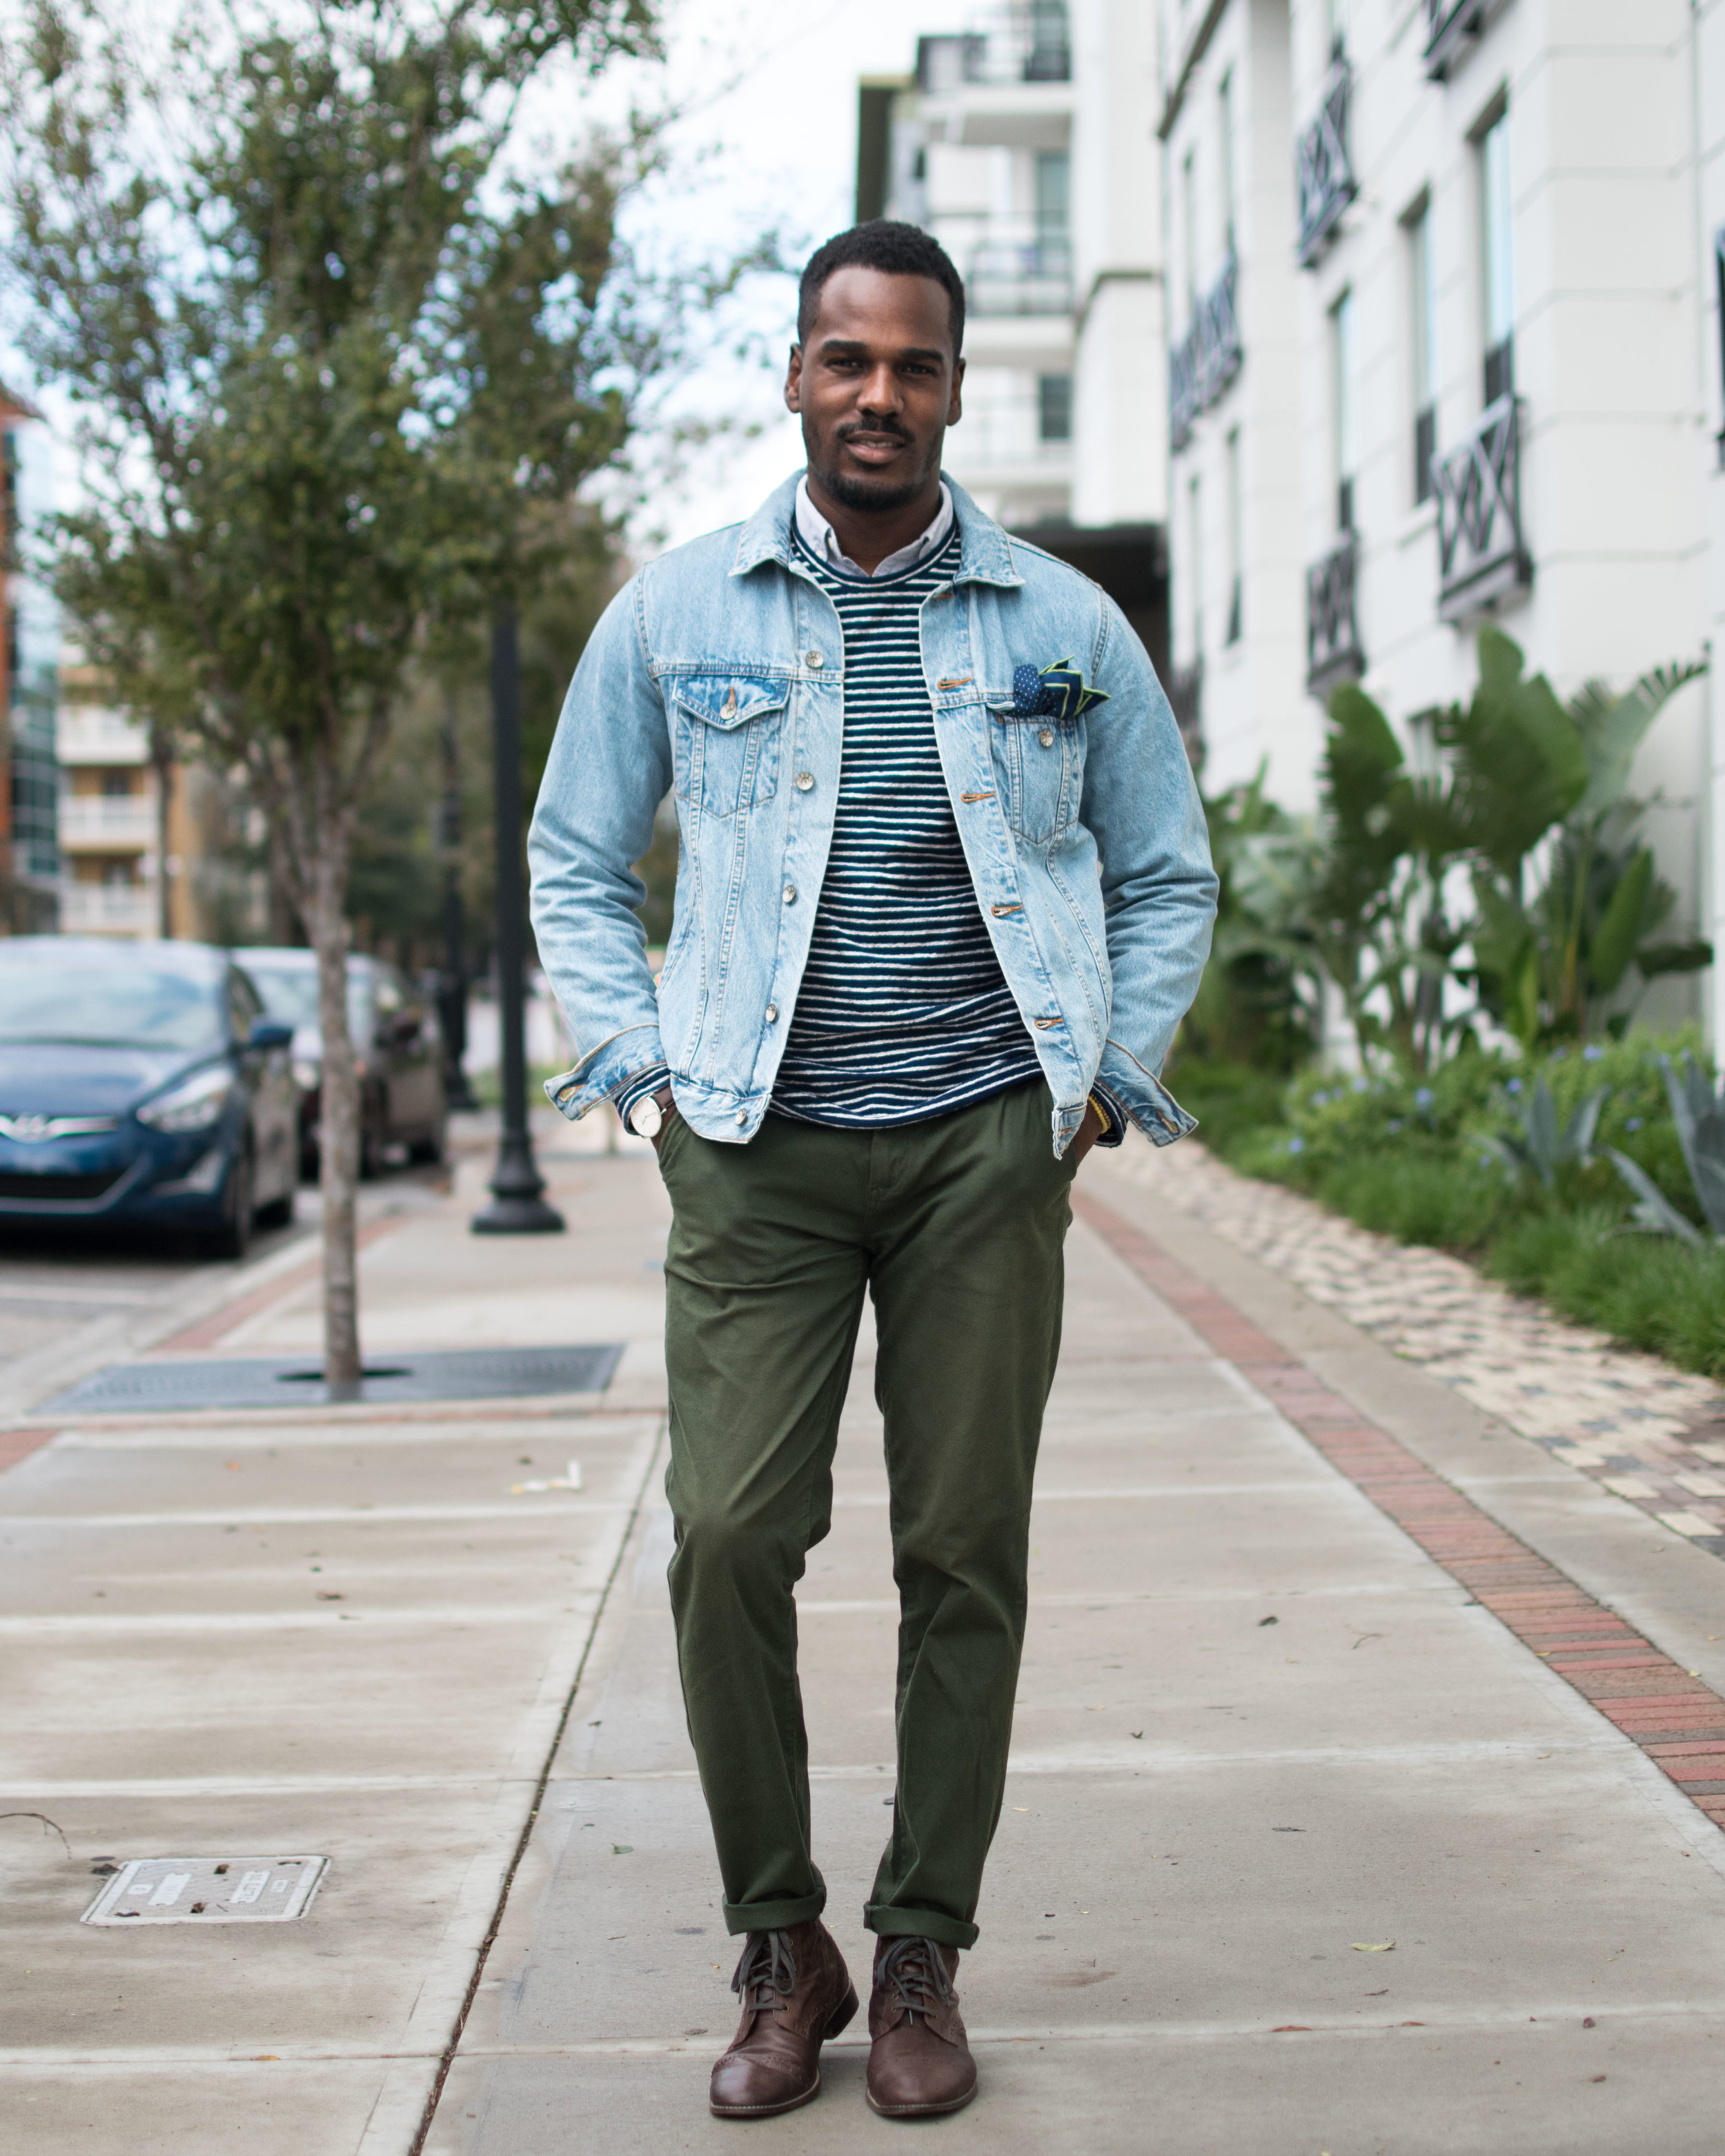 Cotton is always up for the job when it comes to creating looks that can suit any occasion. This holiday season throw on a versatile denim jacket to instantly add bold detail to an otherwise traditional outfit.⠀ #GregsStyleGuide @DiscoverCotton#ShopCotton